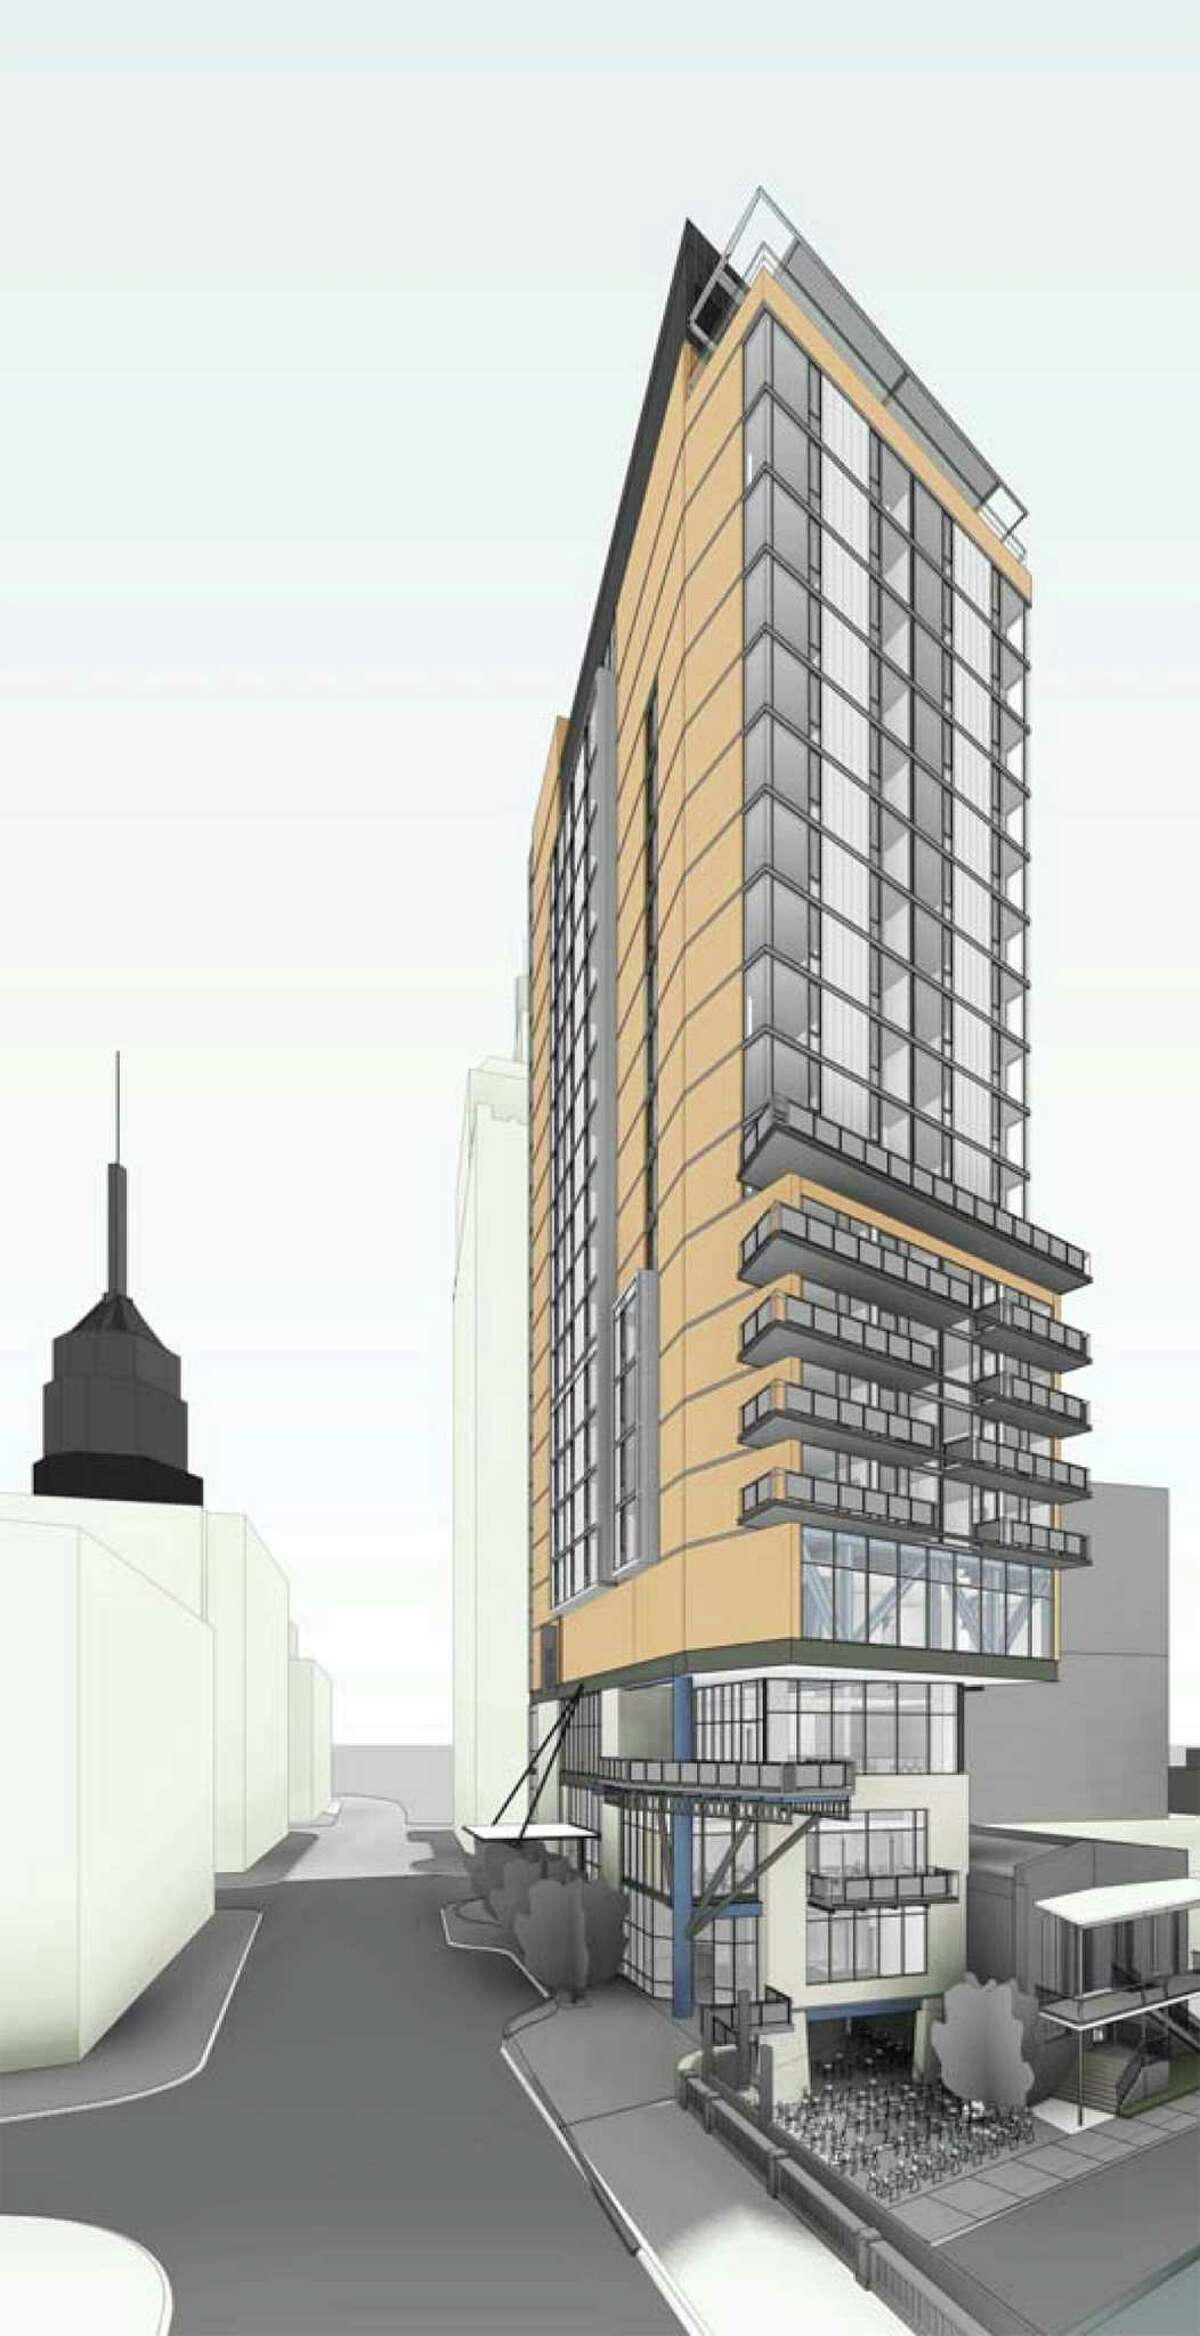 Plans for a skyscraper Hilton hotel along the downtown River Walk got approval from the city Historic and Design Review Commission on Wednesday.